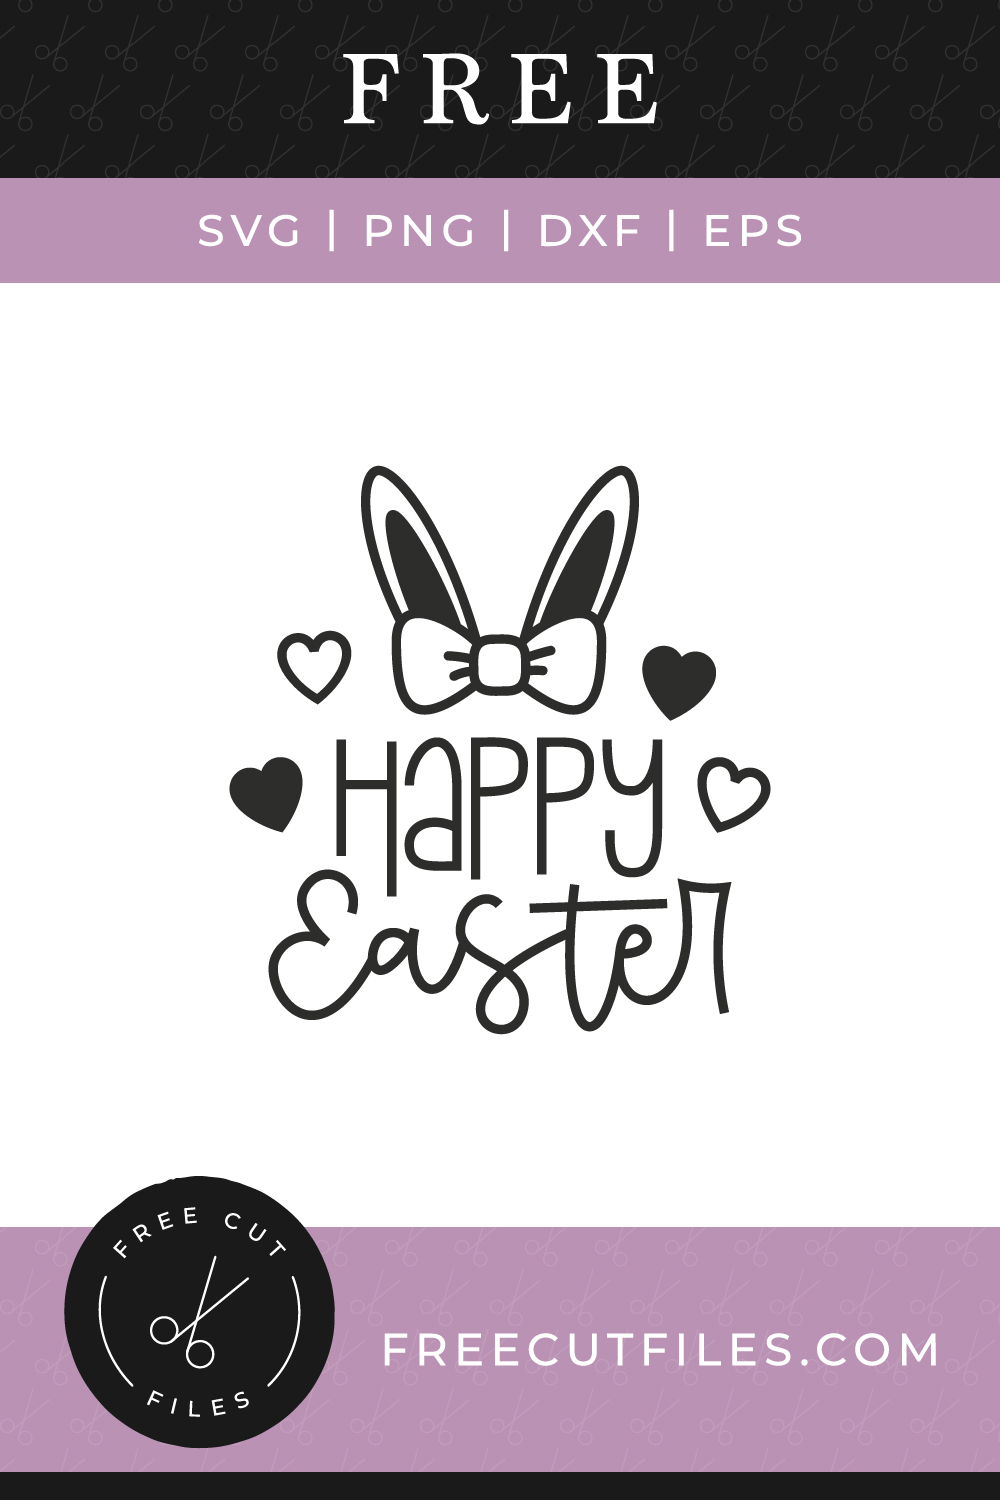 Free Happy Easter SVG